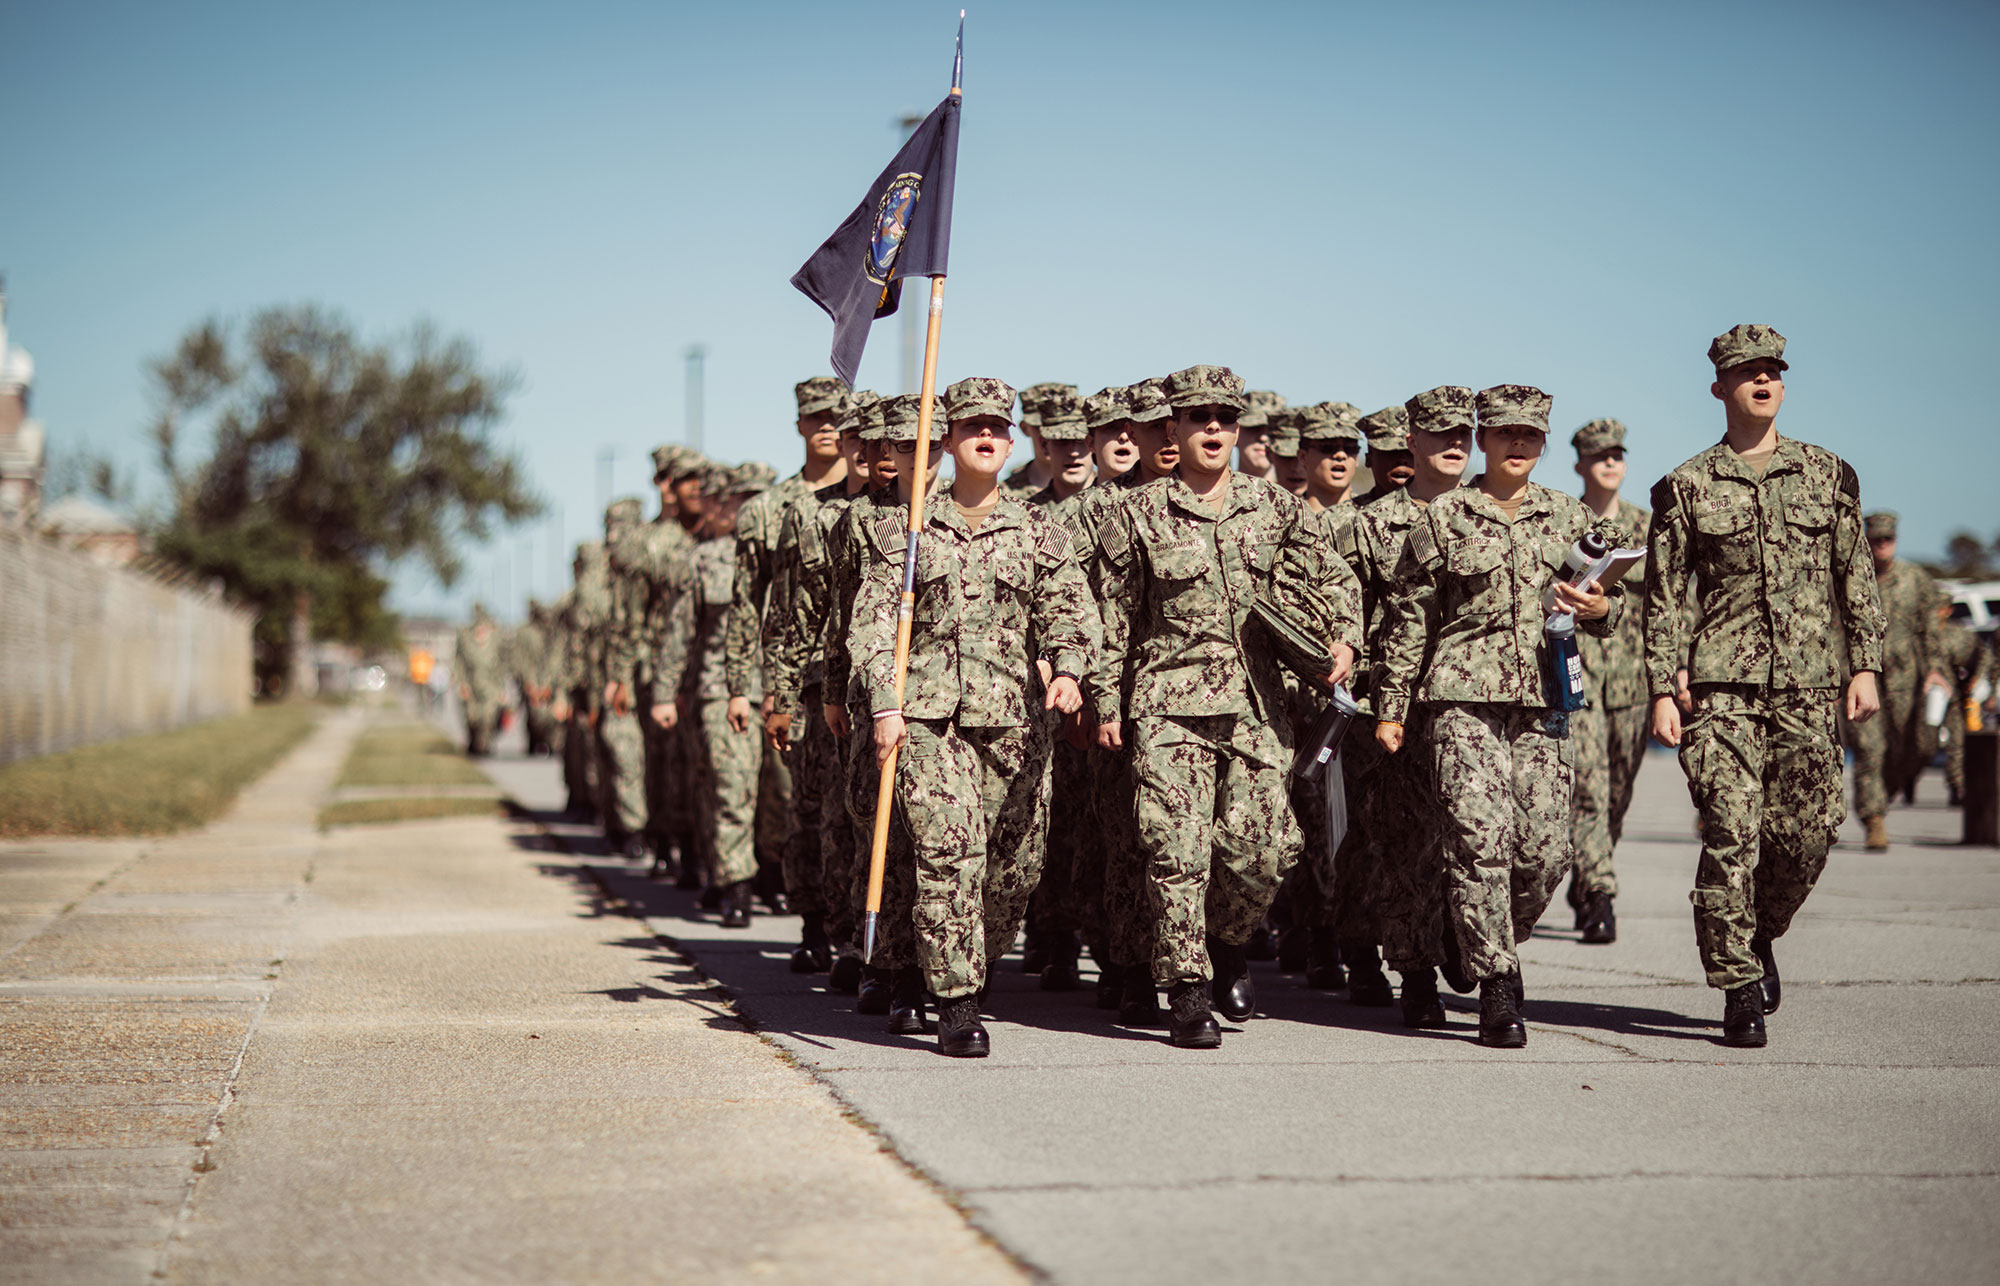 Members of the US Navy at the boot camp at Corry Station in Pensacola, Florida